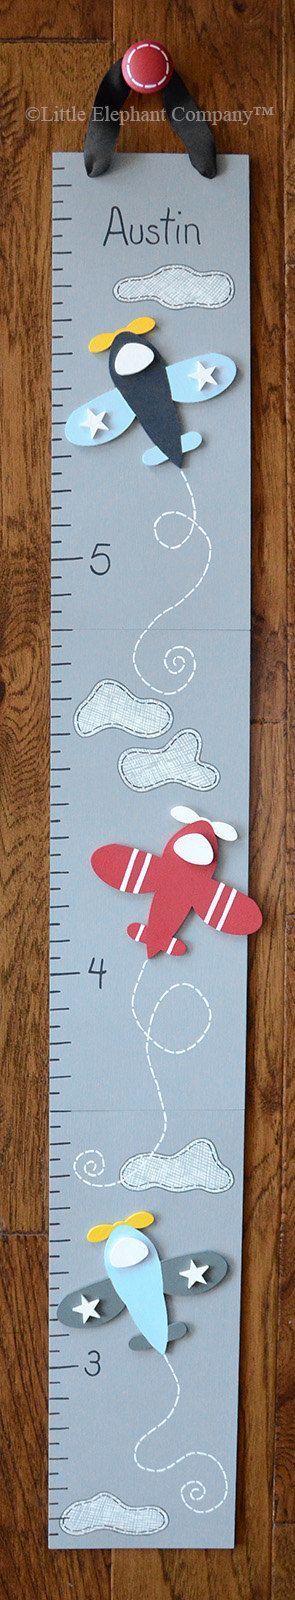 Vintage Airplane Wooden Growth Chart Handpainted Free Nail Etsy Wooden Growth Chart Growth Chart Personalized Growth Chart